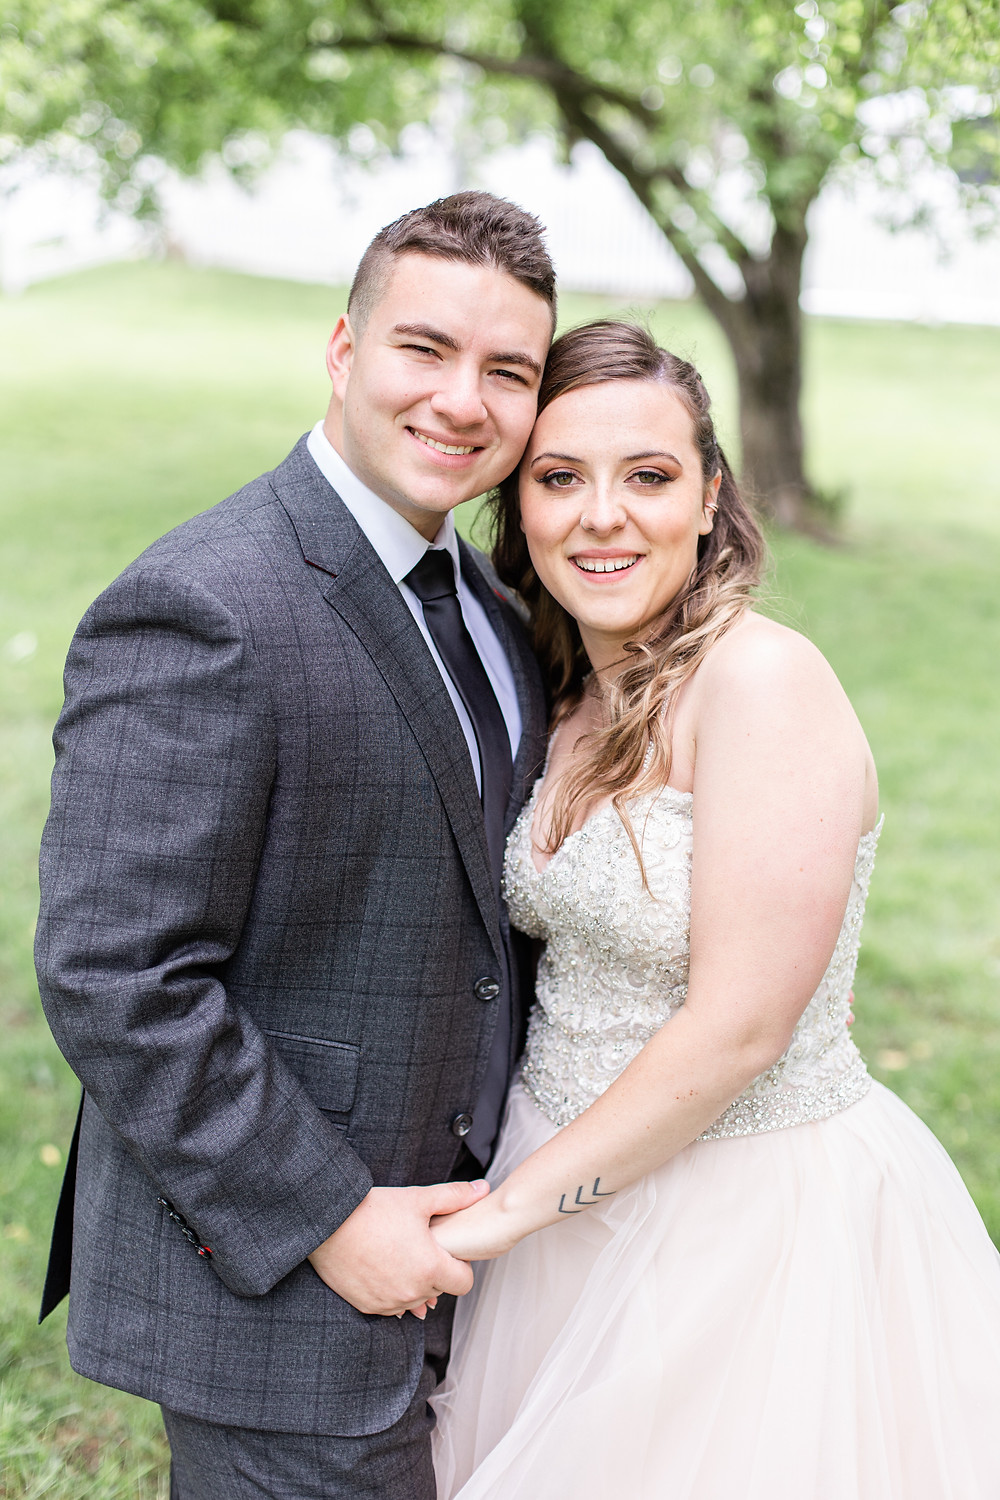 Josh and Andrea wedding photography husband and wife photographer team michigan pictures winter wedding hydrangea blu barn bride and groom first look apple orchard smiling